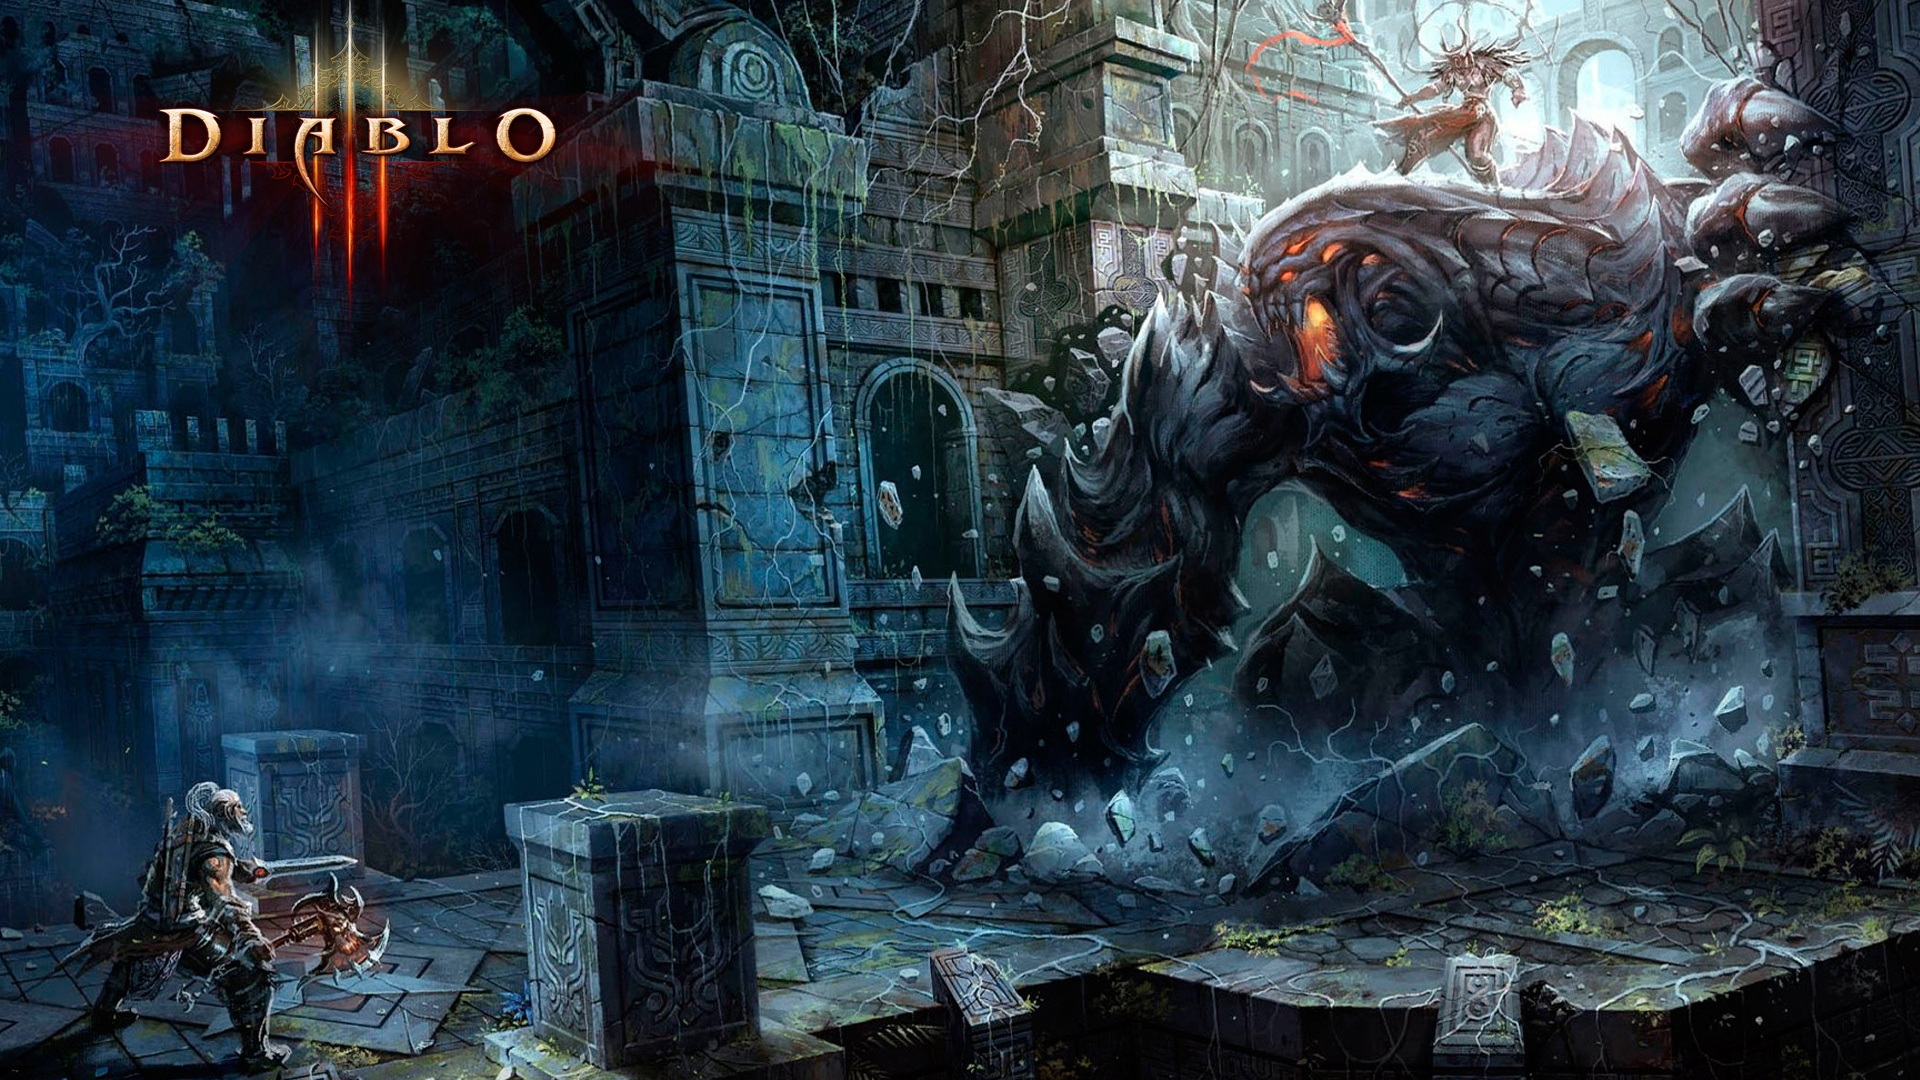 Barbarian Fight Diablo 3   High Definition Wallpapers   HD wallpapers 1920x1080